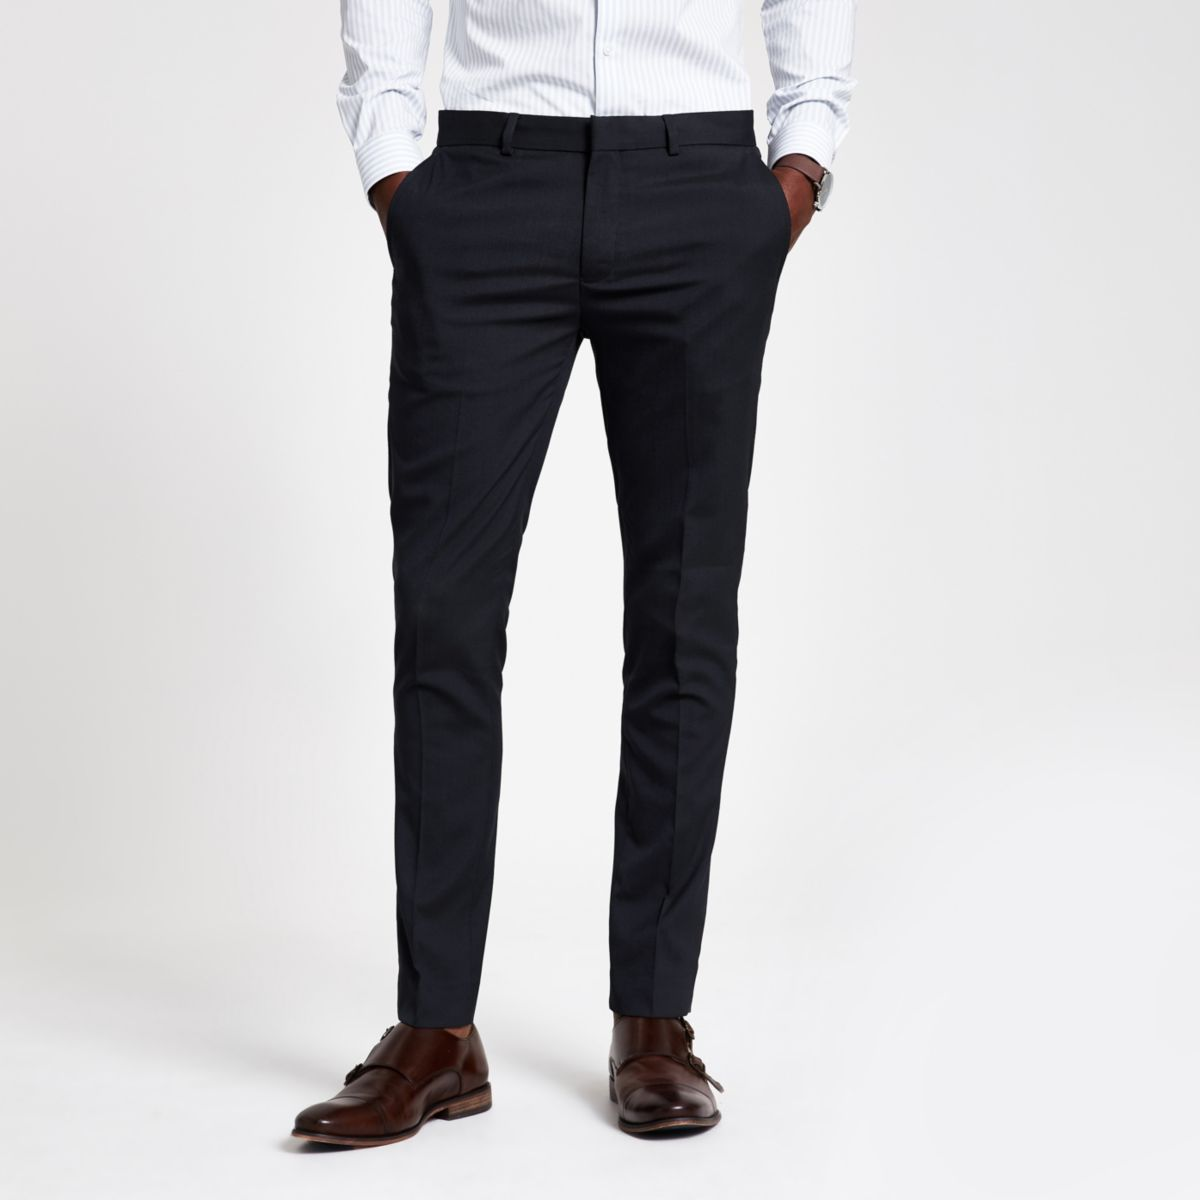 Navy super skinny fit smart pants